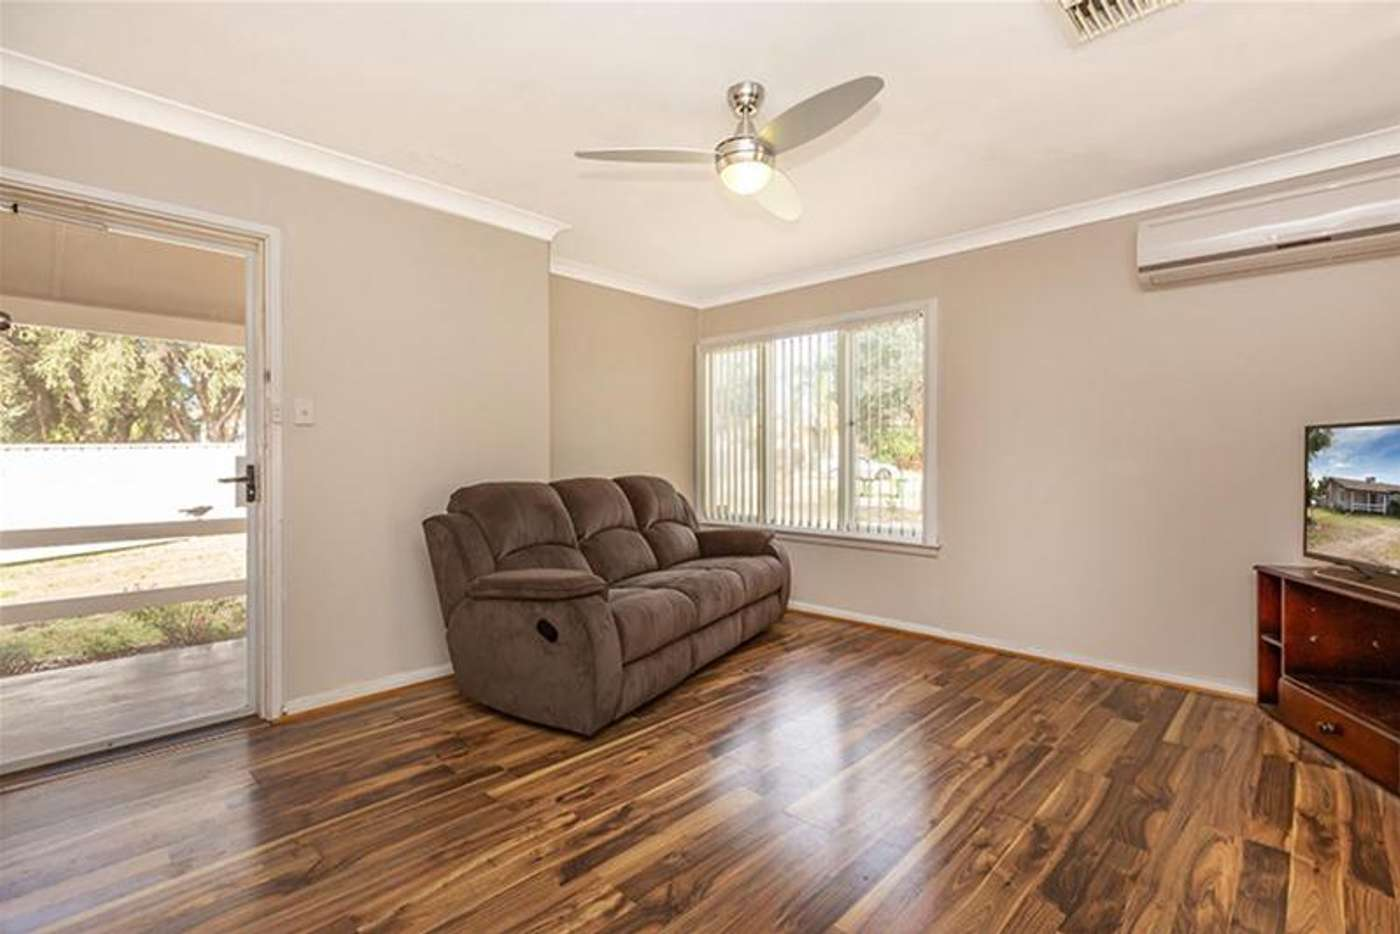 Main view of Homely house listing, 44 Jaeger Avenue, Gunnedah NSW 2380